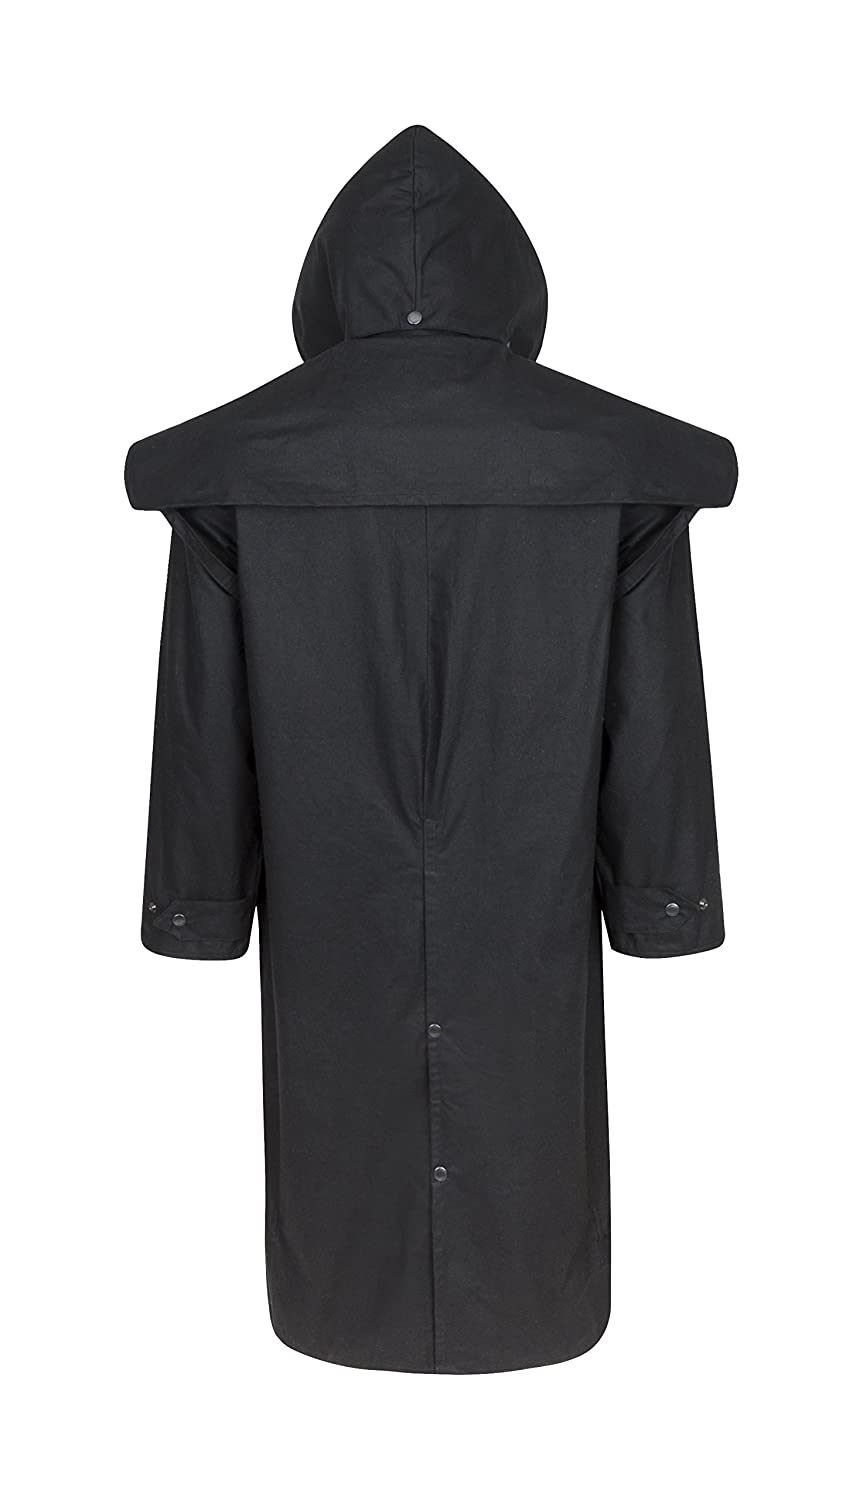 5be311fce Stockman Unisex Premium Quality Lined Waxed Cape Long Raincoat Made in UK:  Amazon.co.uk: Clothing